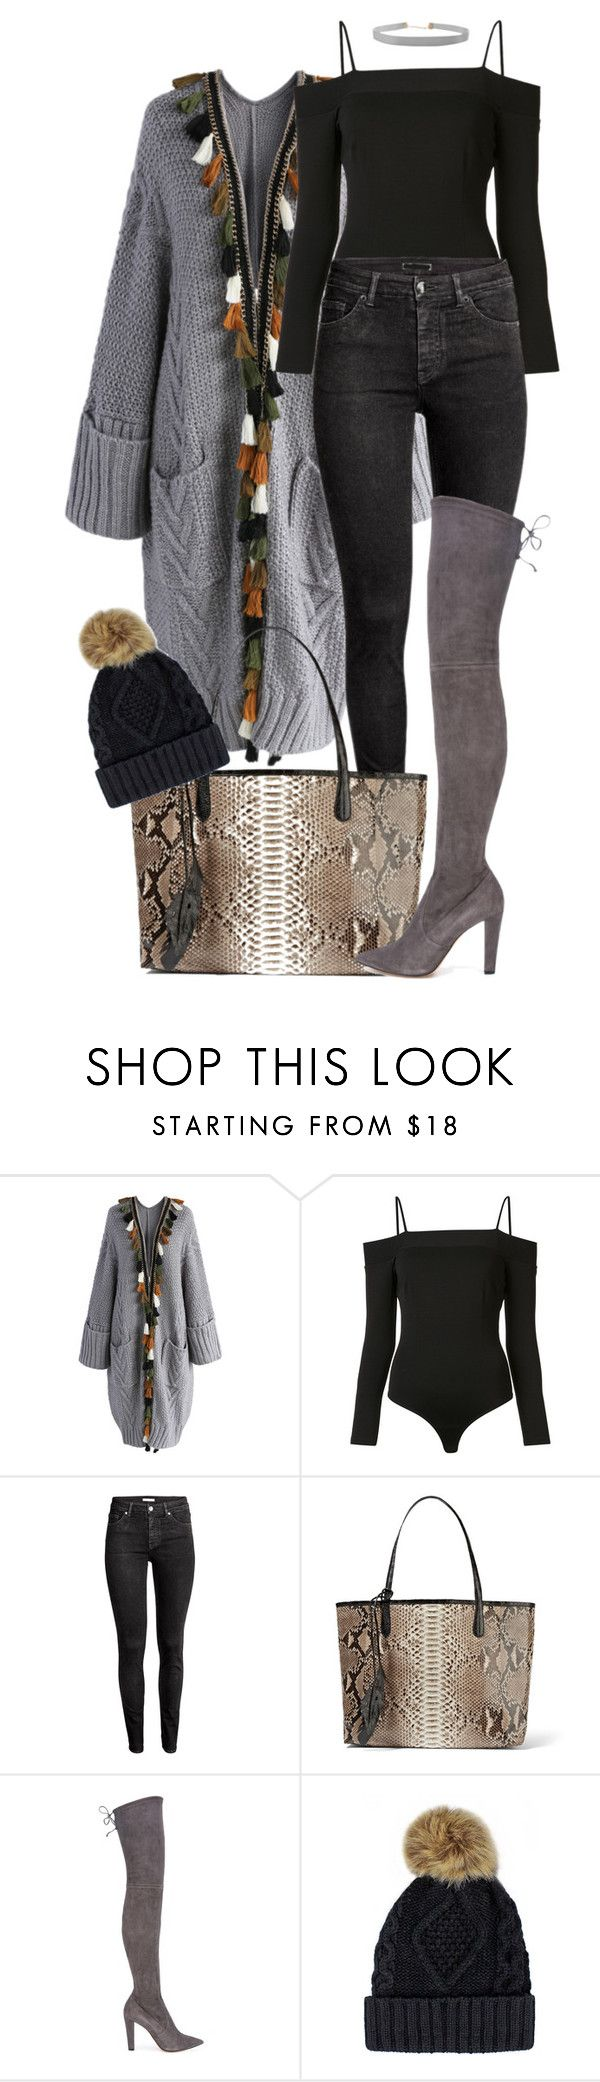 """""""Juss Kickin' It"""" by sultrysalem ❤ liked on Polyvore featuring Chicwish, Fleur du Mal, H&M, Nancy Gonzalez, Jean-Michel Cazabat and Humble Chic"""